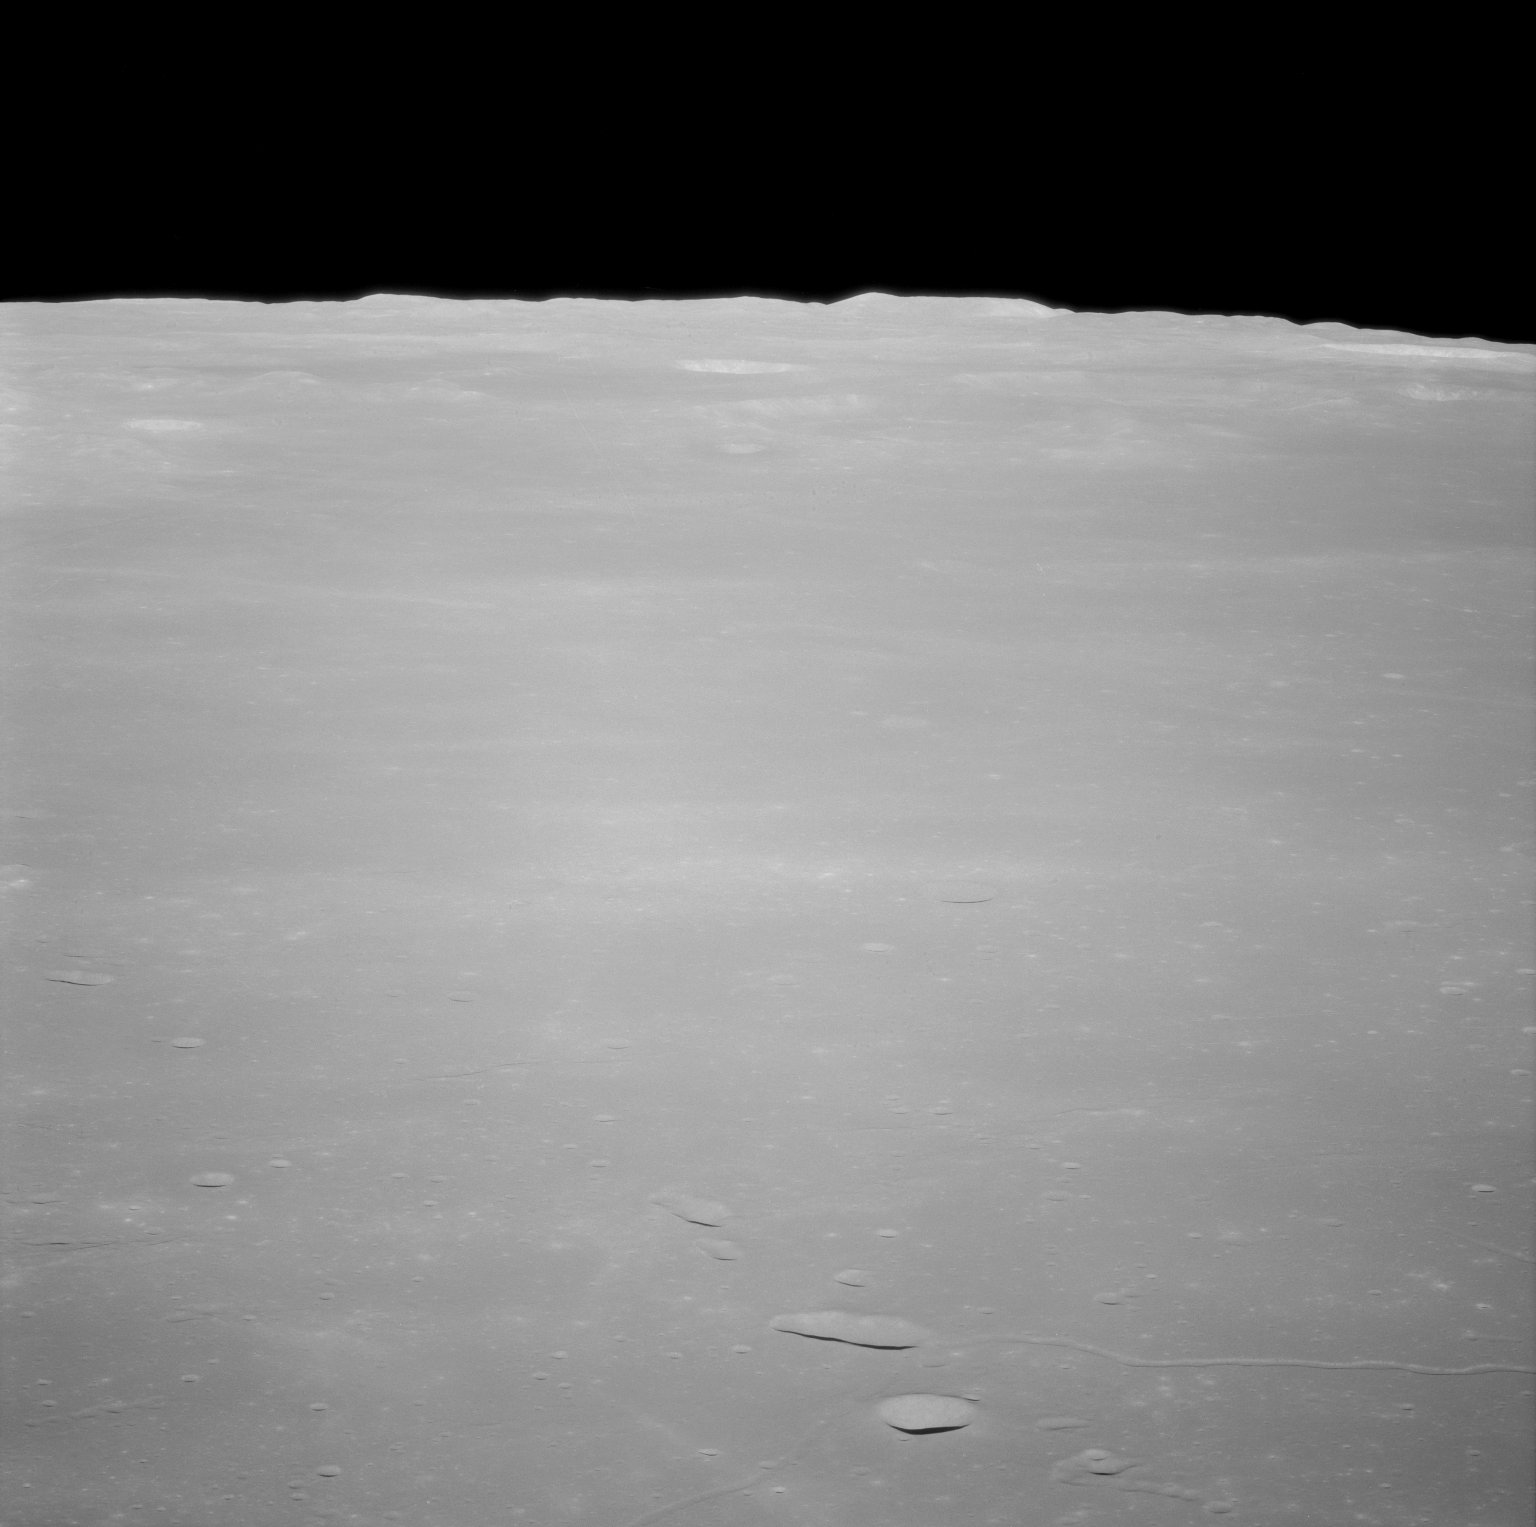 Apollo 11 Mission image - Landing Site 2